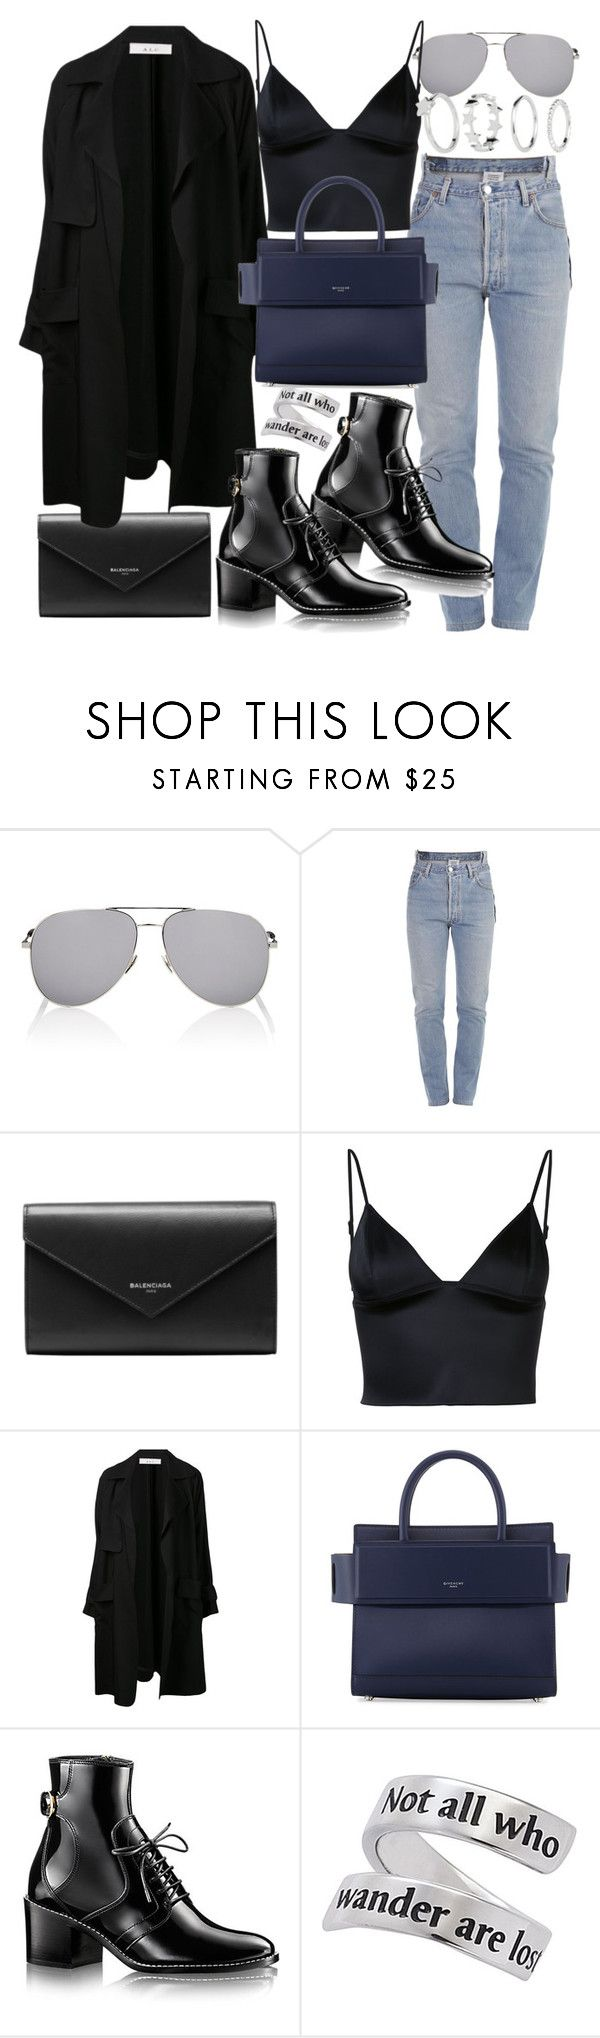 """Untitled #20862"" by florencia95 ❤ liked on Polyvore featuring Yves Saint Laurent, Vetements, Balenciaga, T By Alexander Wang, A.L.C., Givenchy and H&M"